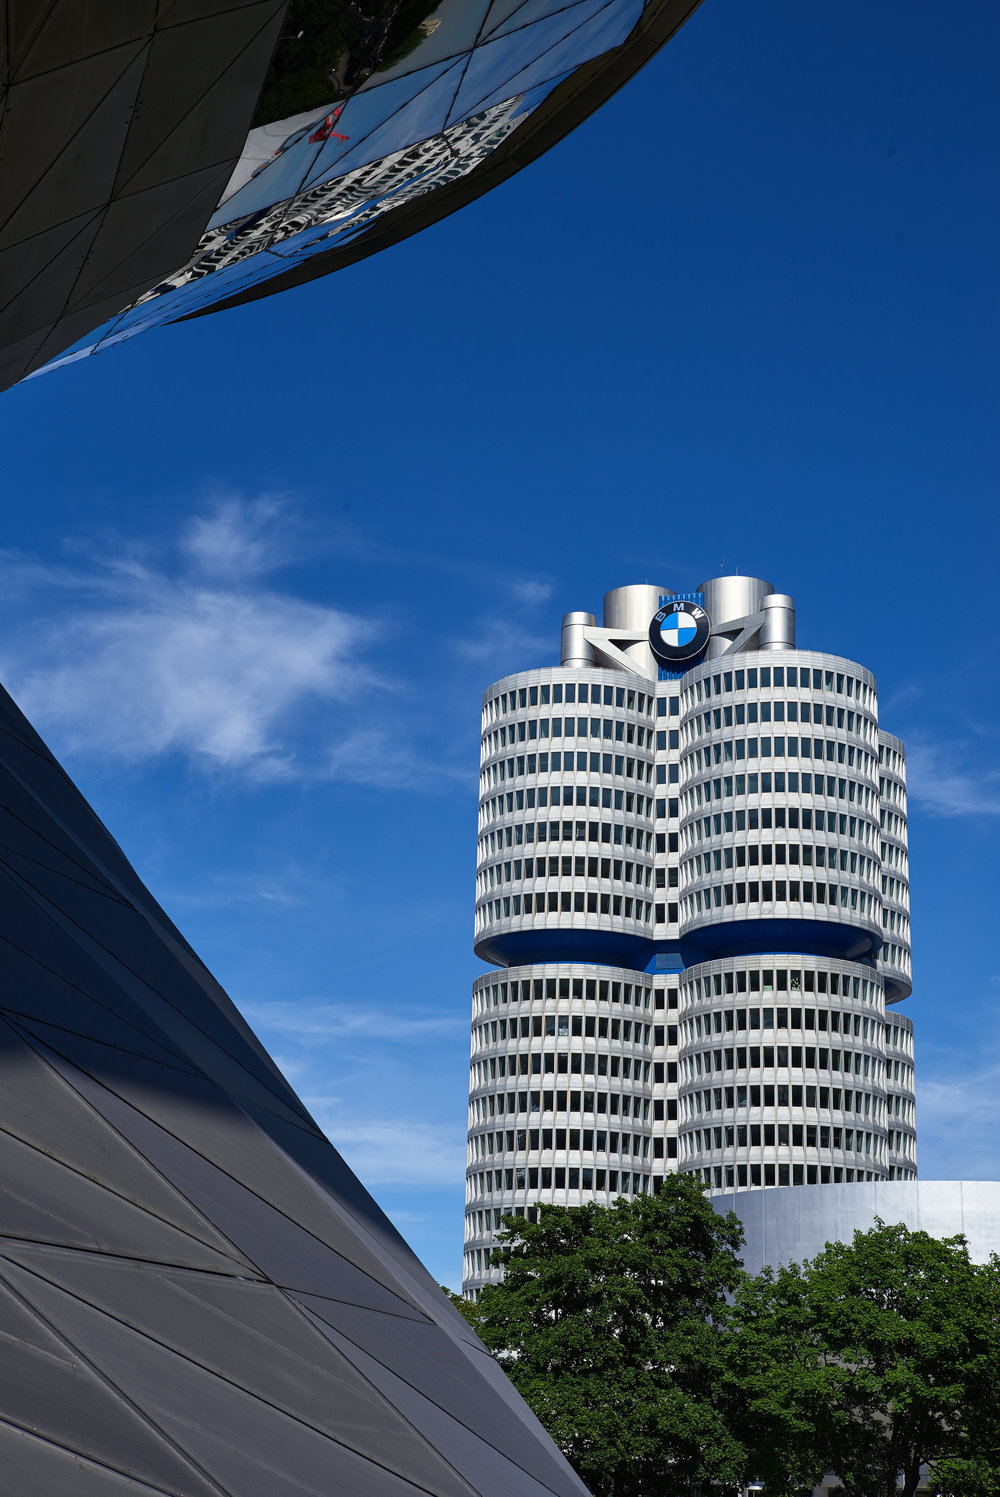 The BMW office, as seen from BMW Welt, with the museum in front.